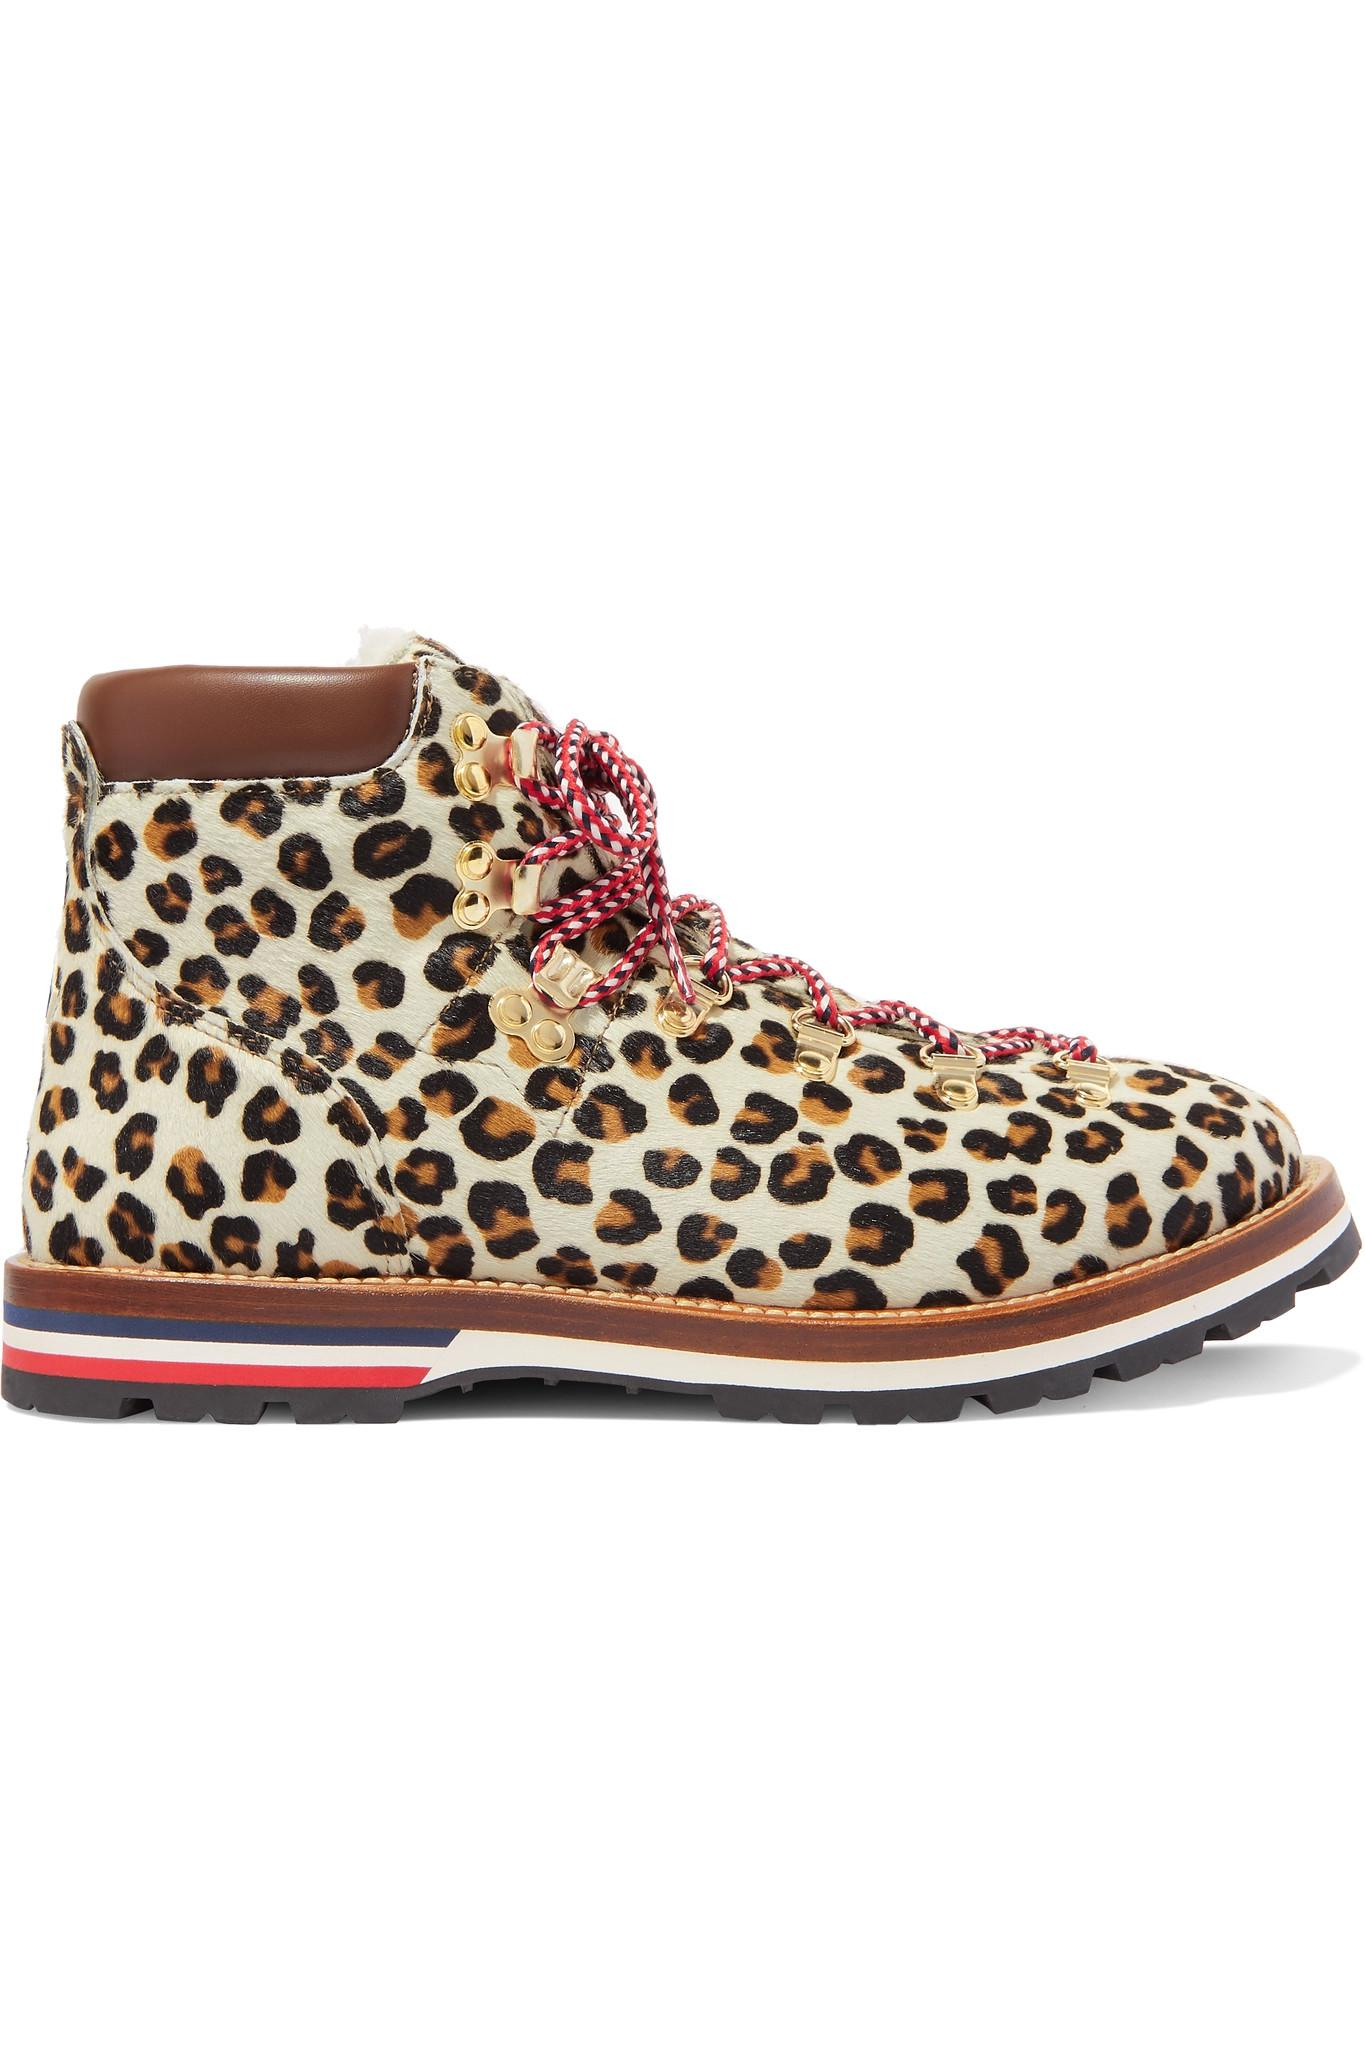 8e9d20018 Lyst - Moncler Blanche Shearling-lined Calf Hair Ankle Boots in Brown